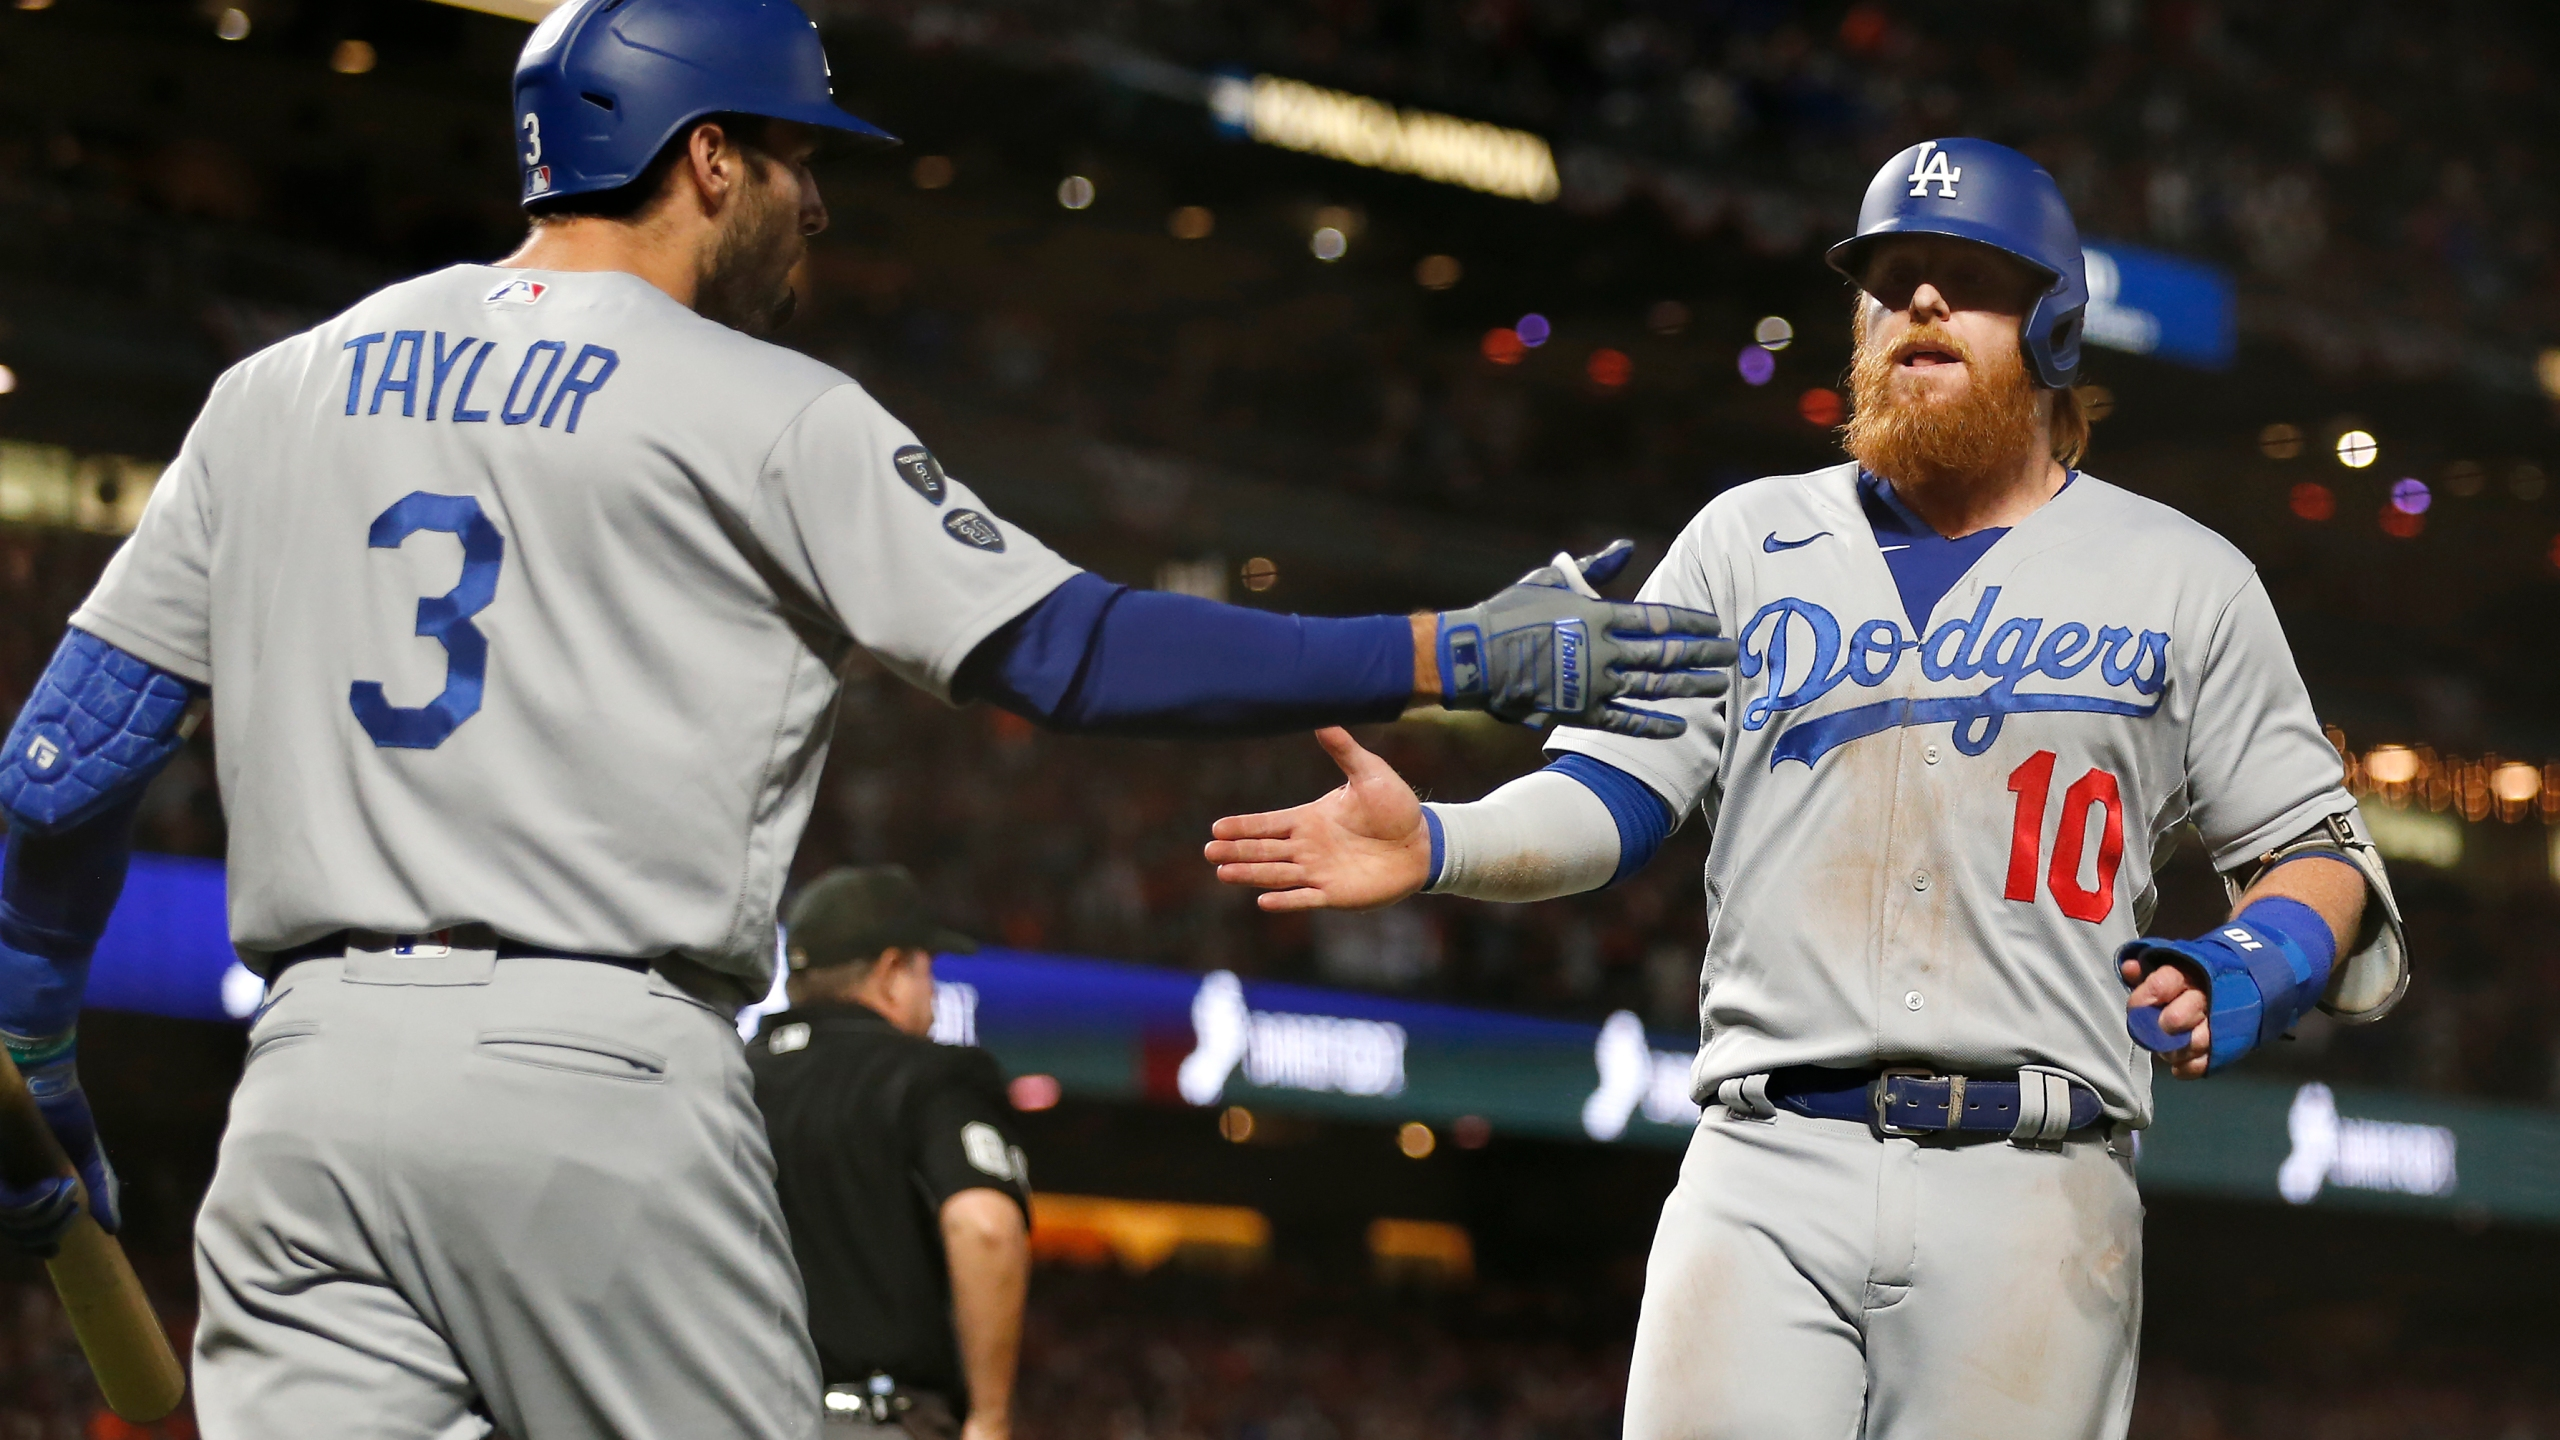 Los Angeles Dodgers' Justin Turner, right, is congratulated by Chris Taylor after scoring against the San Francisco Giants during the ninth inning of Game 5 of a baseball National League Division Series Thursday, Oct. 14, 2021, in San Francisco. (AP Photo/Jed Jacobsohn)